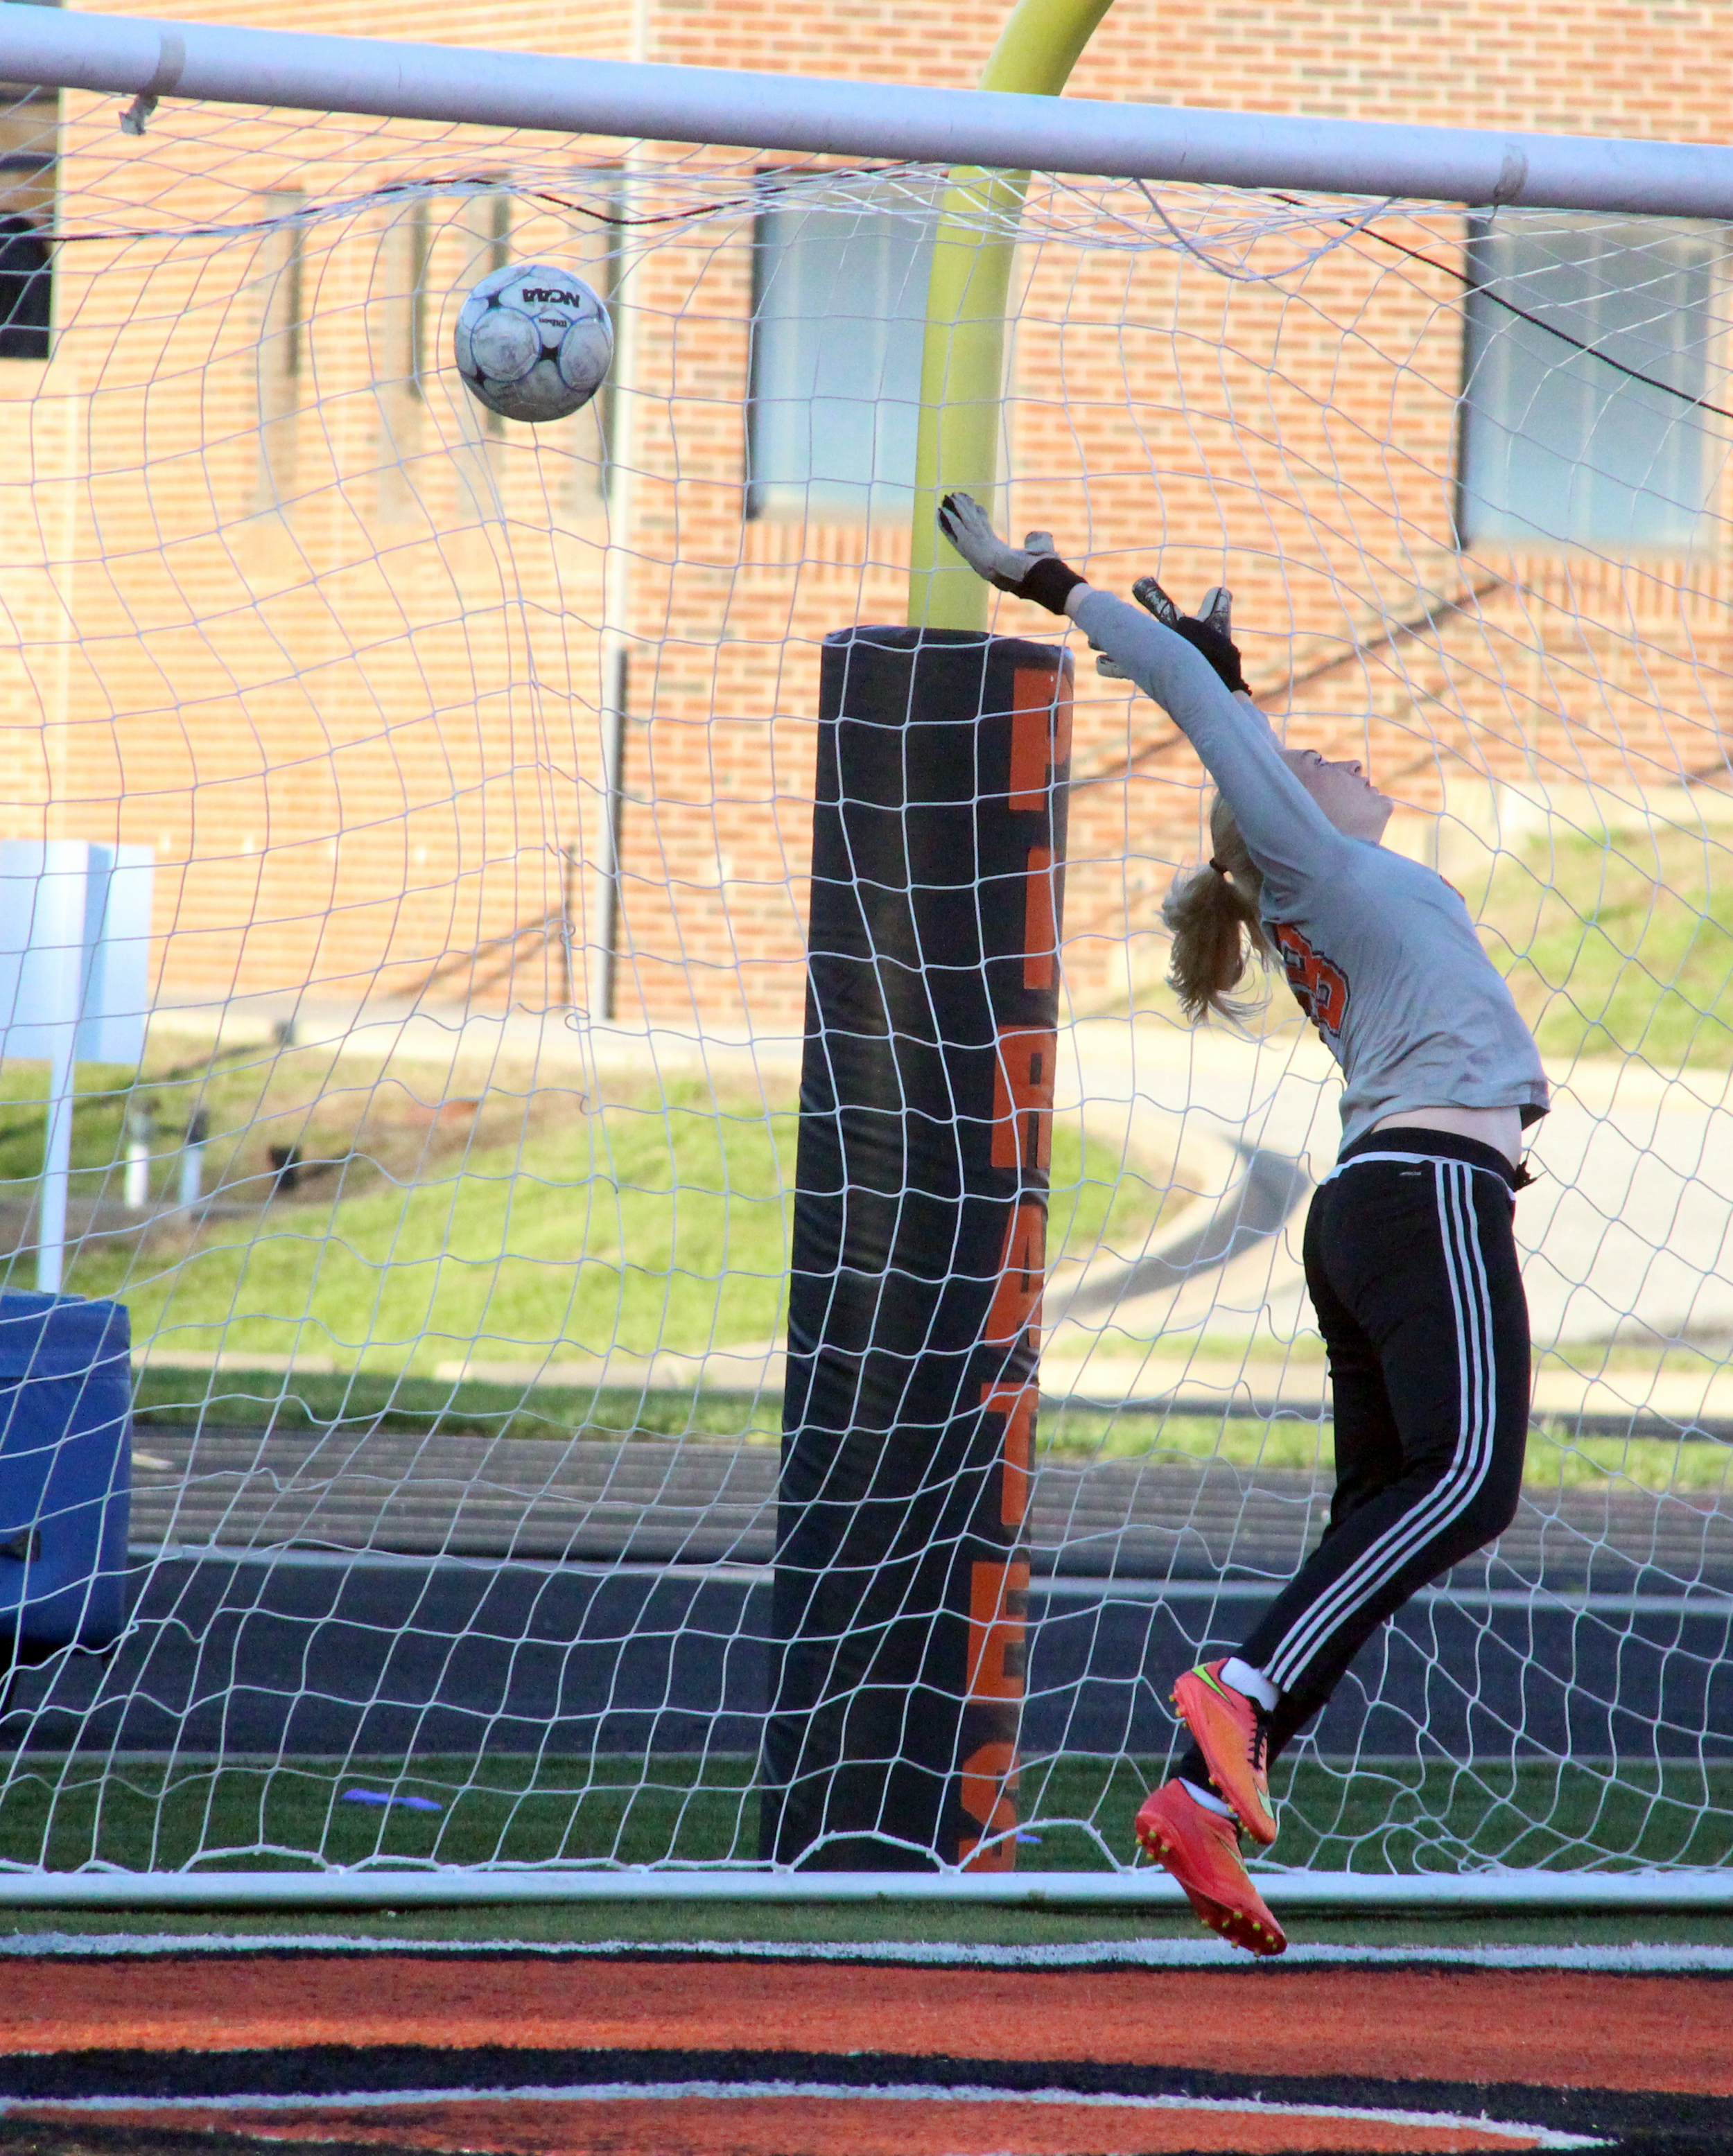 ROSS MARTIN/Citizen photo Platte County goalkeeper Faith Burtchell tips the ball while trying to save a penalty kick against Kearney on Wednesday, April 27 at Pirate Stadium.